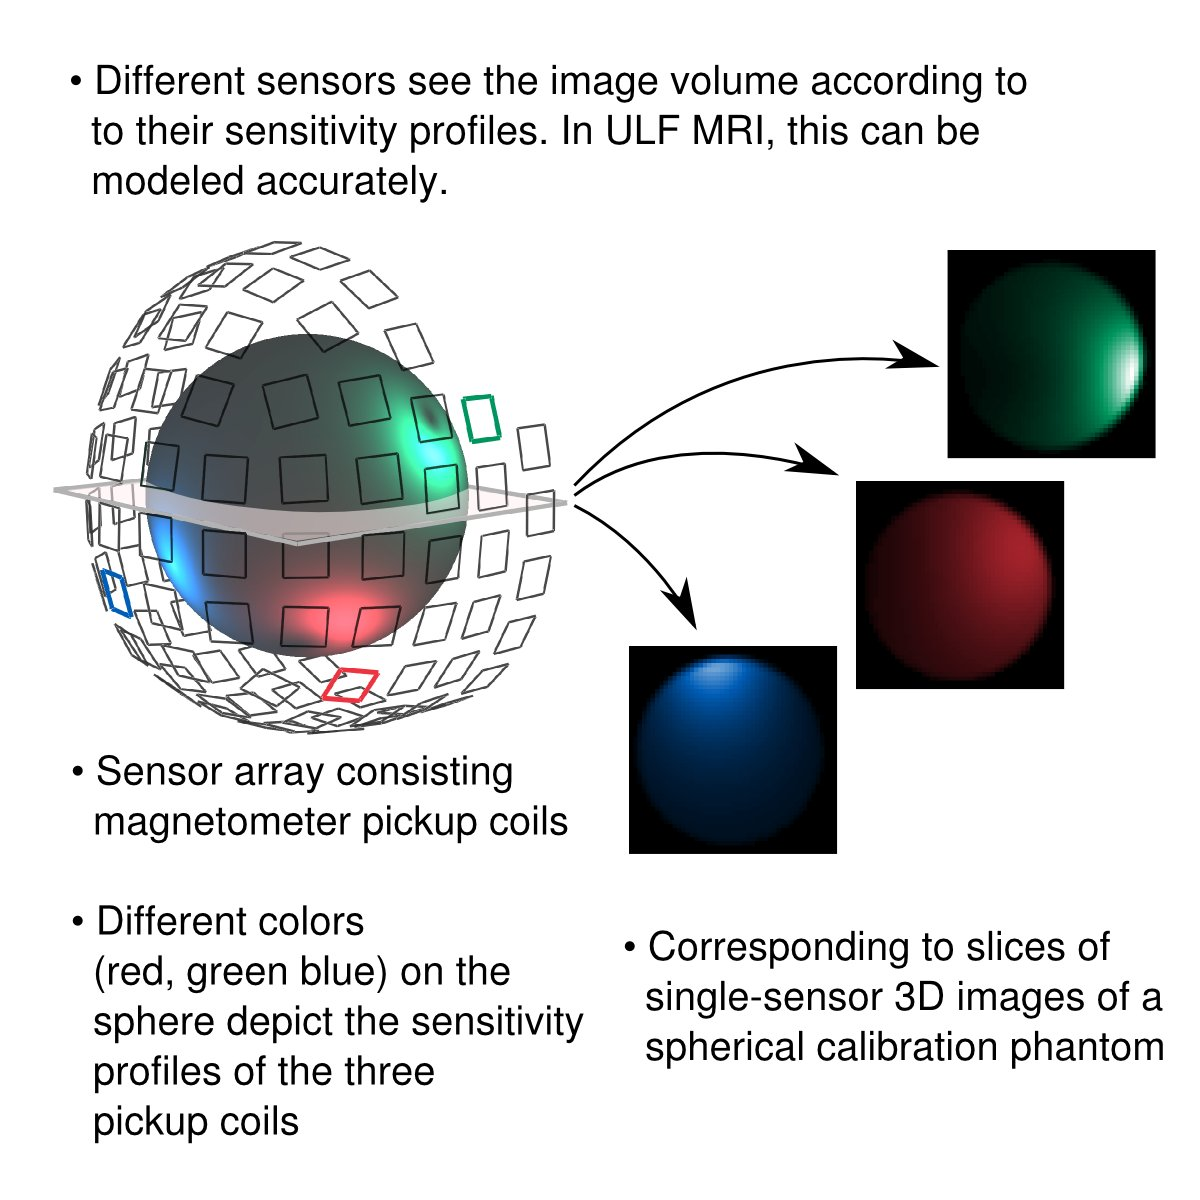 @abc_aalto @k7hoven (3) Our calibration is based on the sensitivity profiles of the magnetic sensors. The same sensors are used for both MEG and MRI. #brainTC https://t.co/C1ekfDg6Uu